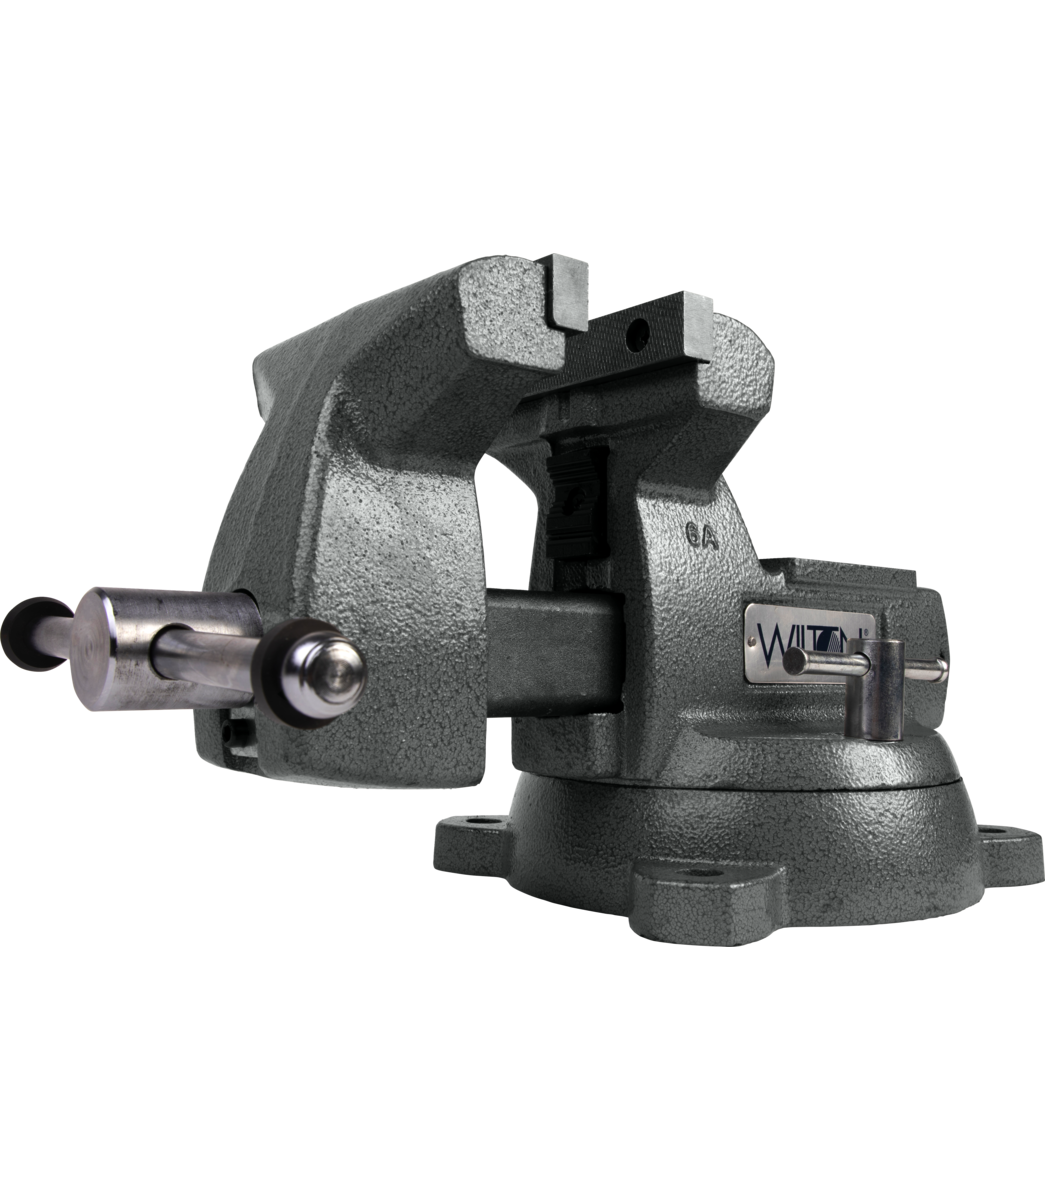 "Manual: Mechanics Vise 6"" Jaw with Swivel Base"